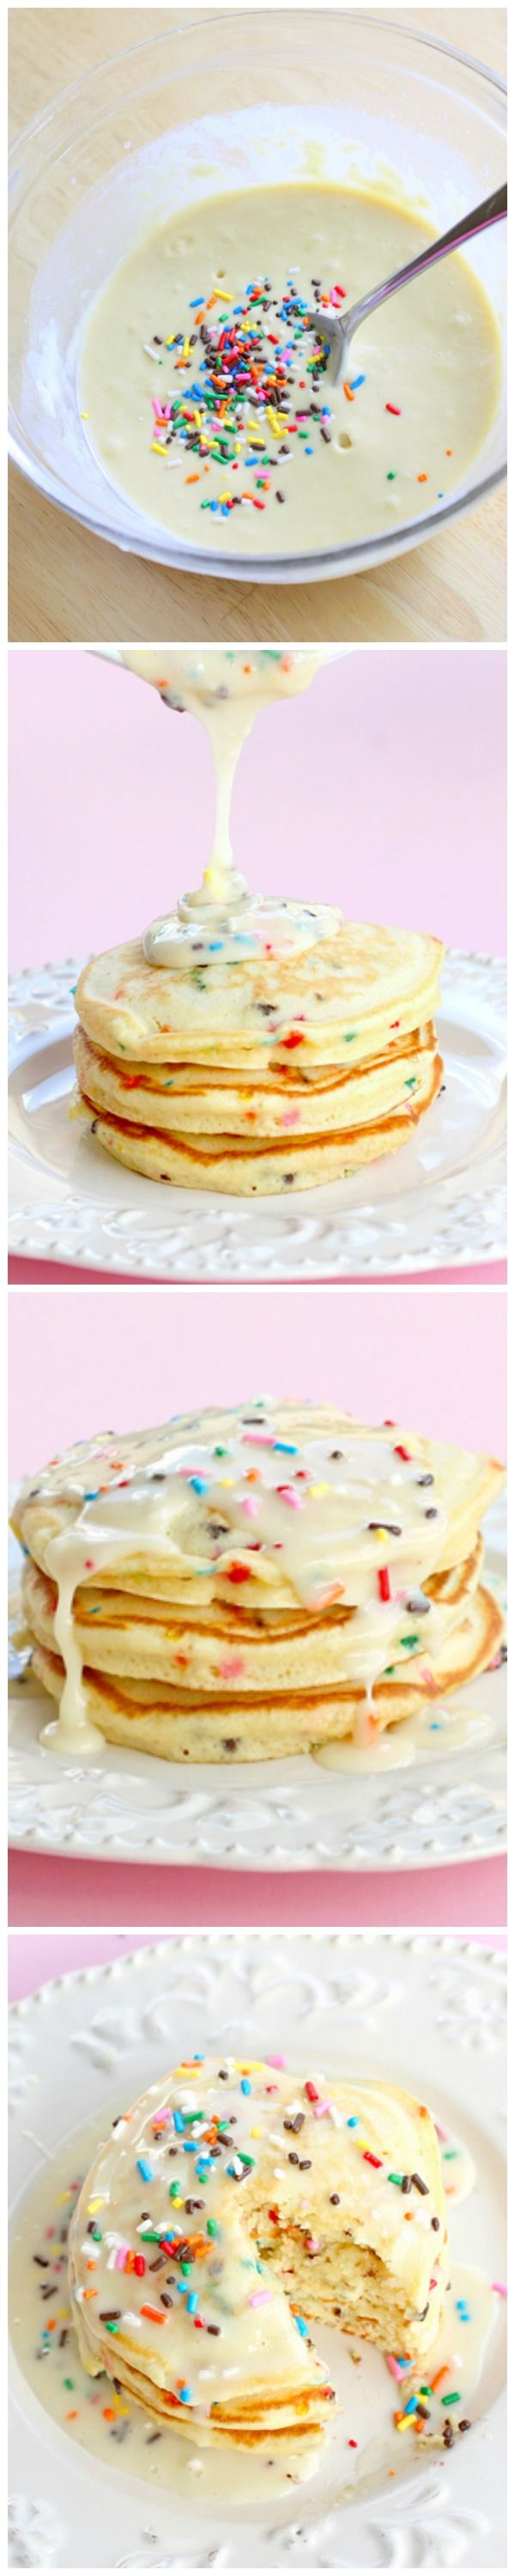 Cake Batter Pancakes #bettycrocker